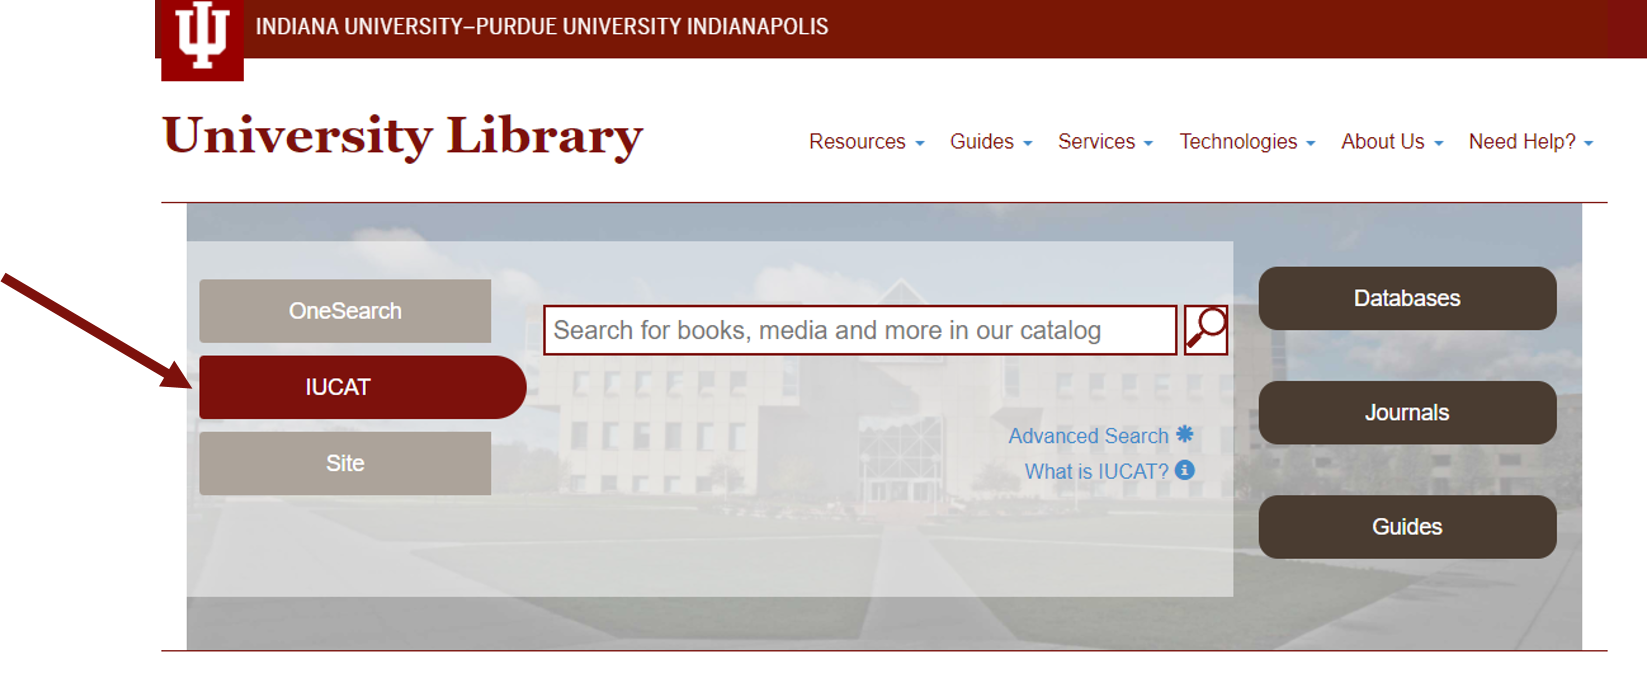 Screenshot of University Library Home Page with IUCAT search box